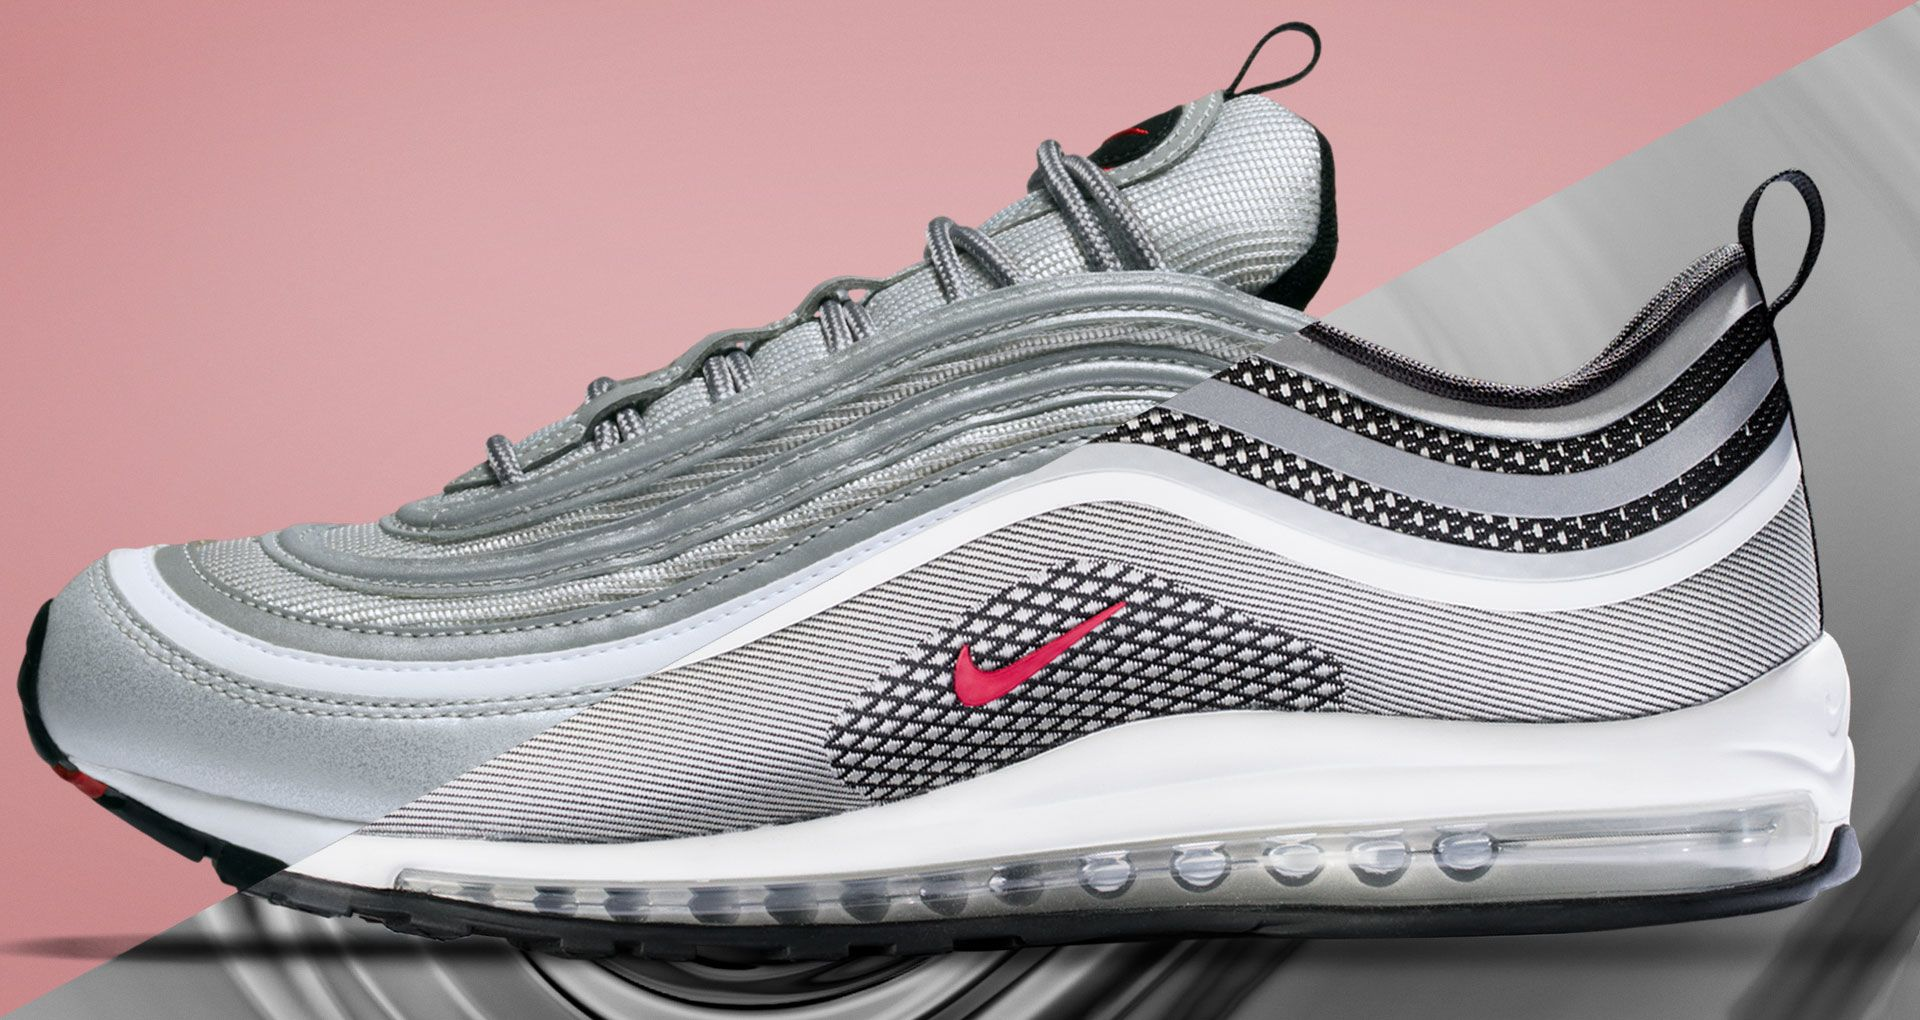 Nike's Air Max 97 Ultra Surfaces In